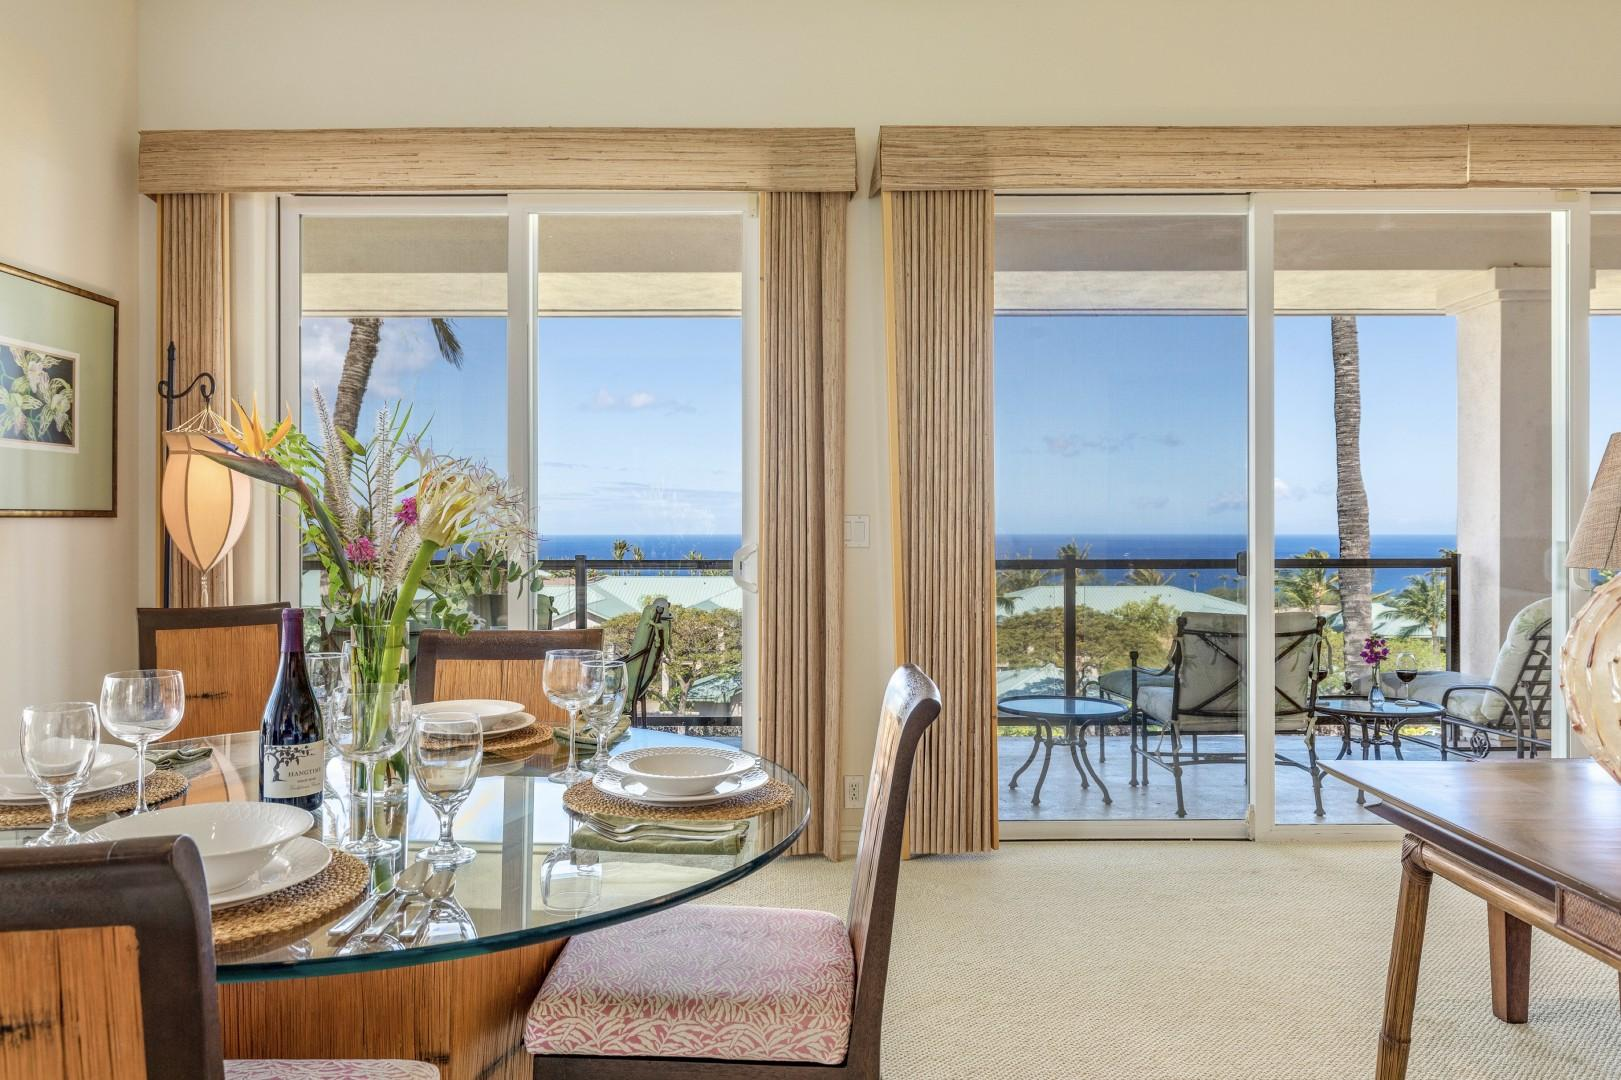 Indoor and outdoor dining both offer ocean views.